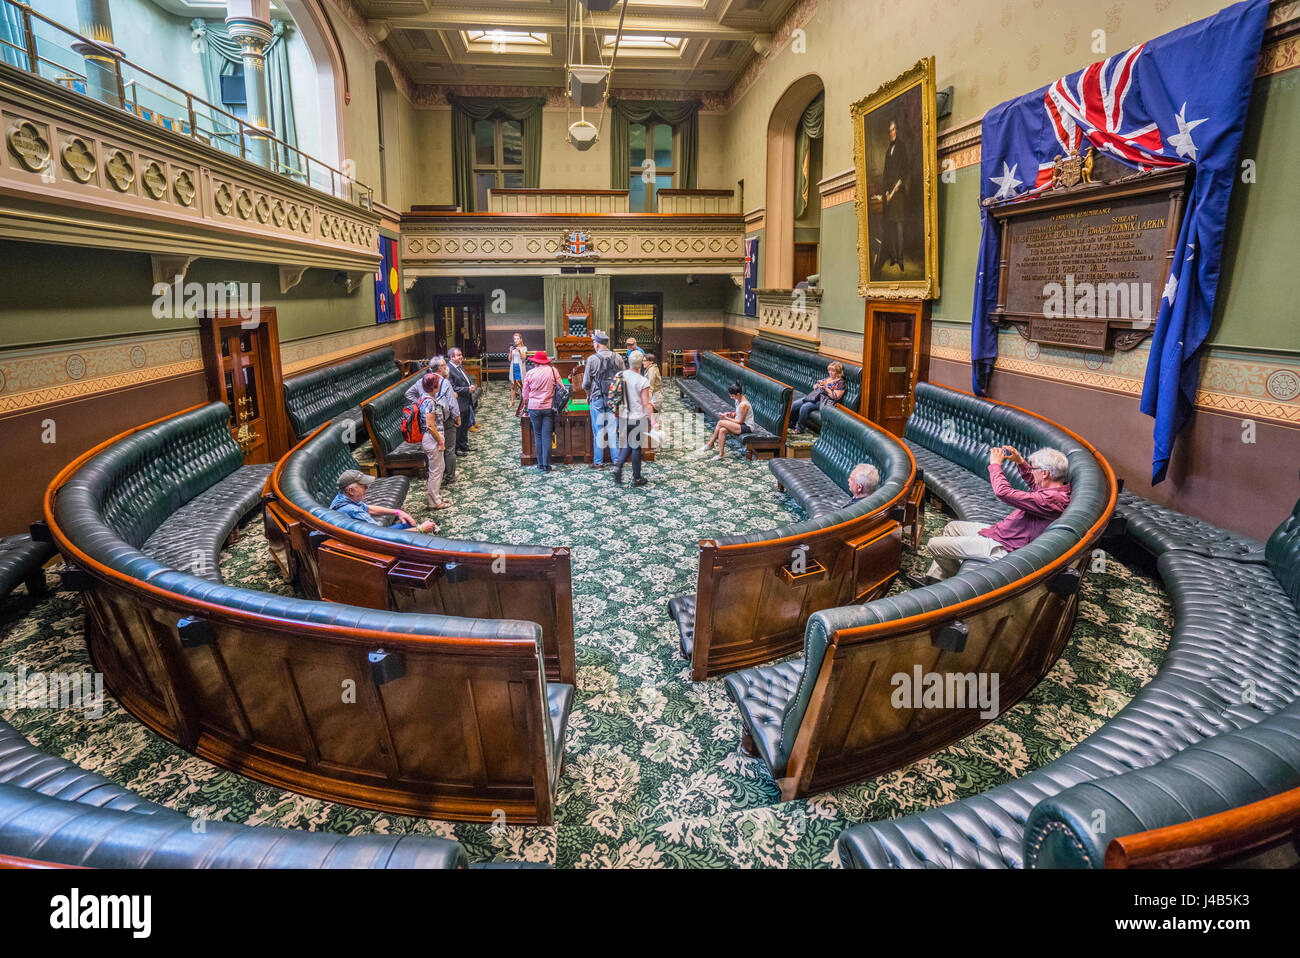 Australia, New South Wales, Sydney, the Legislative Assembly Chamber of the New South Wales Parliament during Open - Stock Image